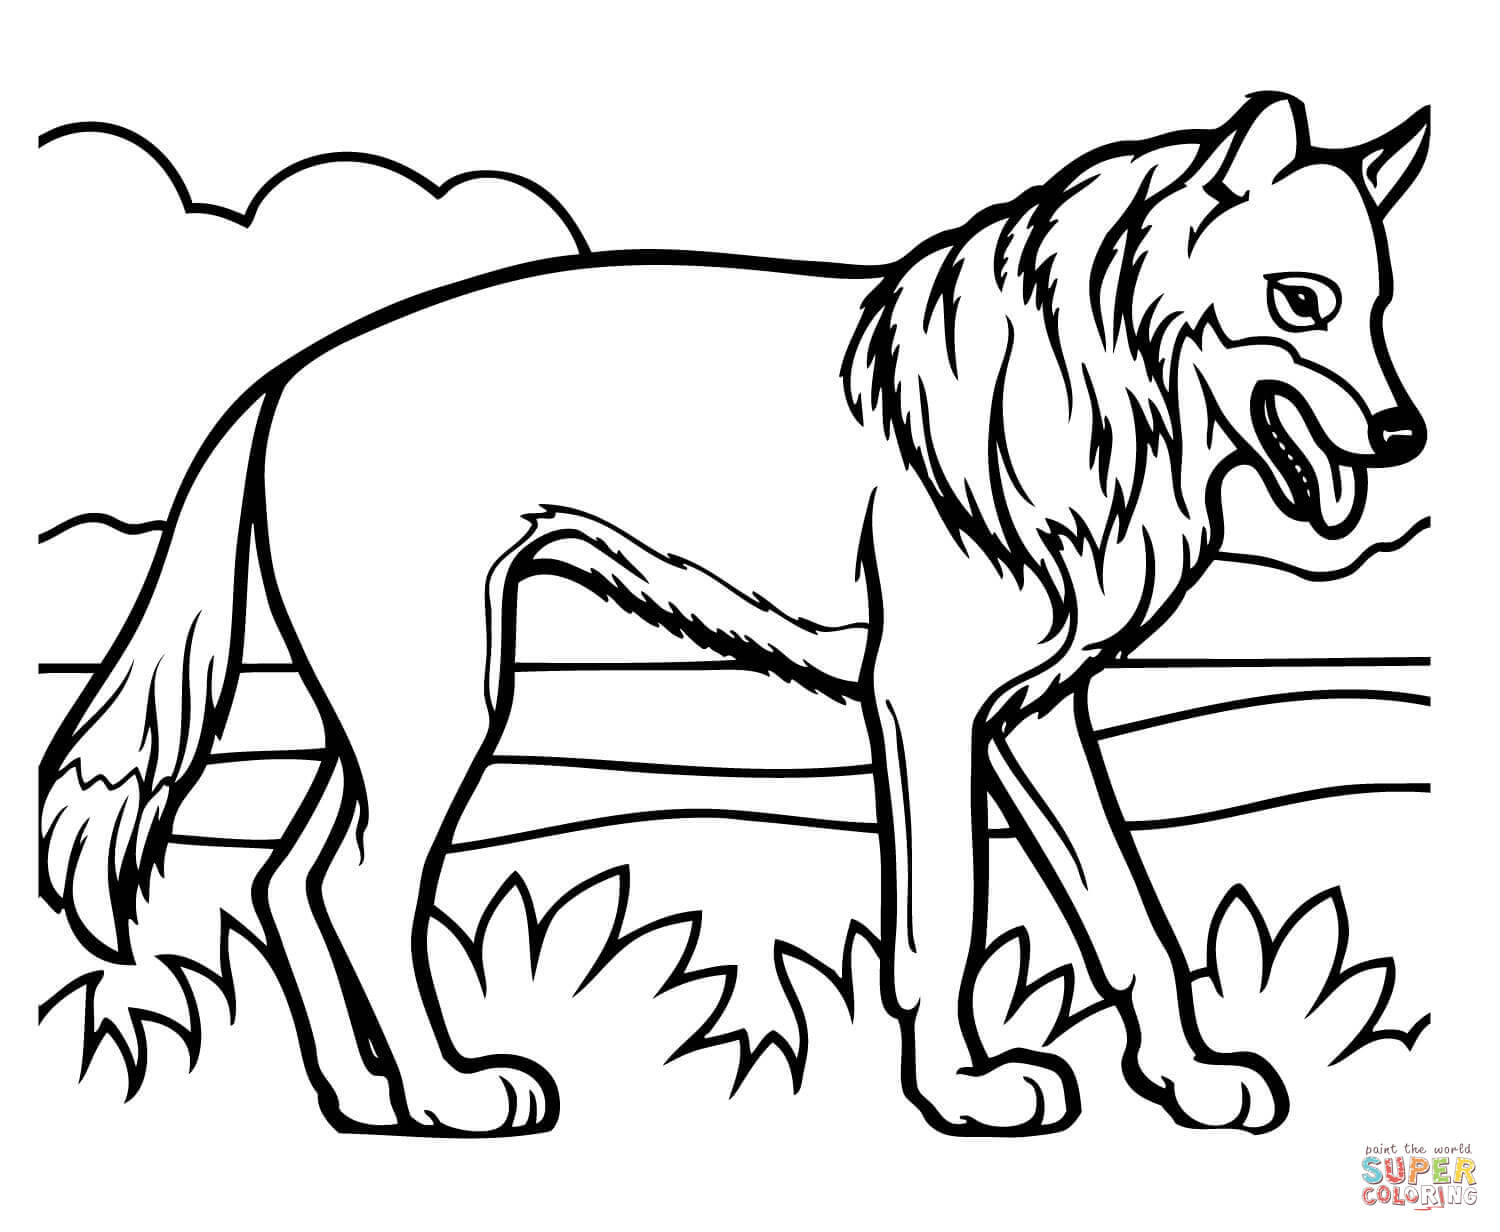 Coyote Coloring Pages. Awesome Coyote Coloring Page Skunk Fu Pages ...